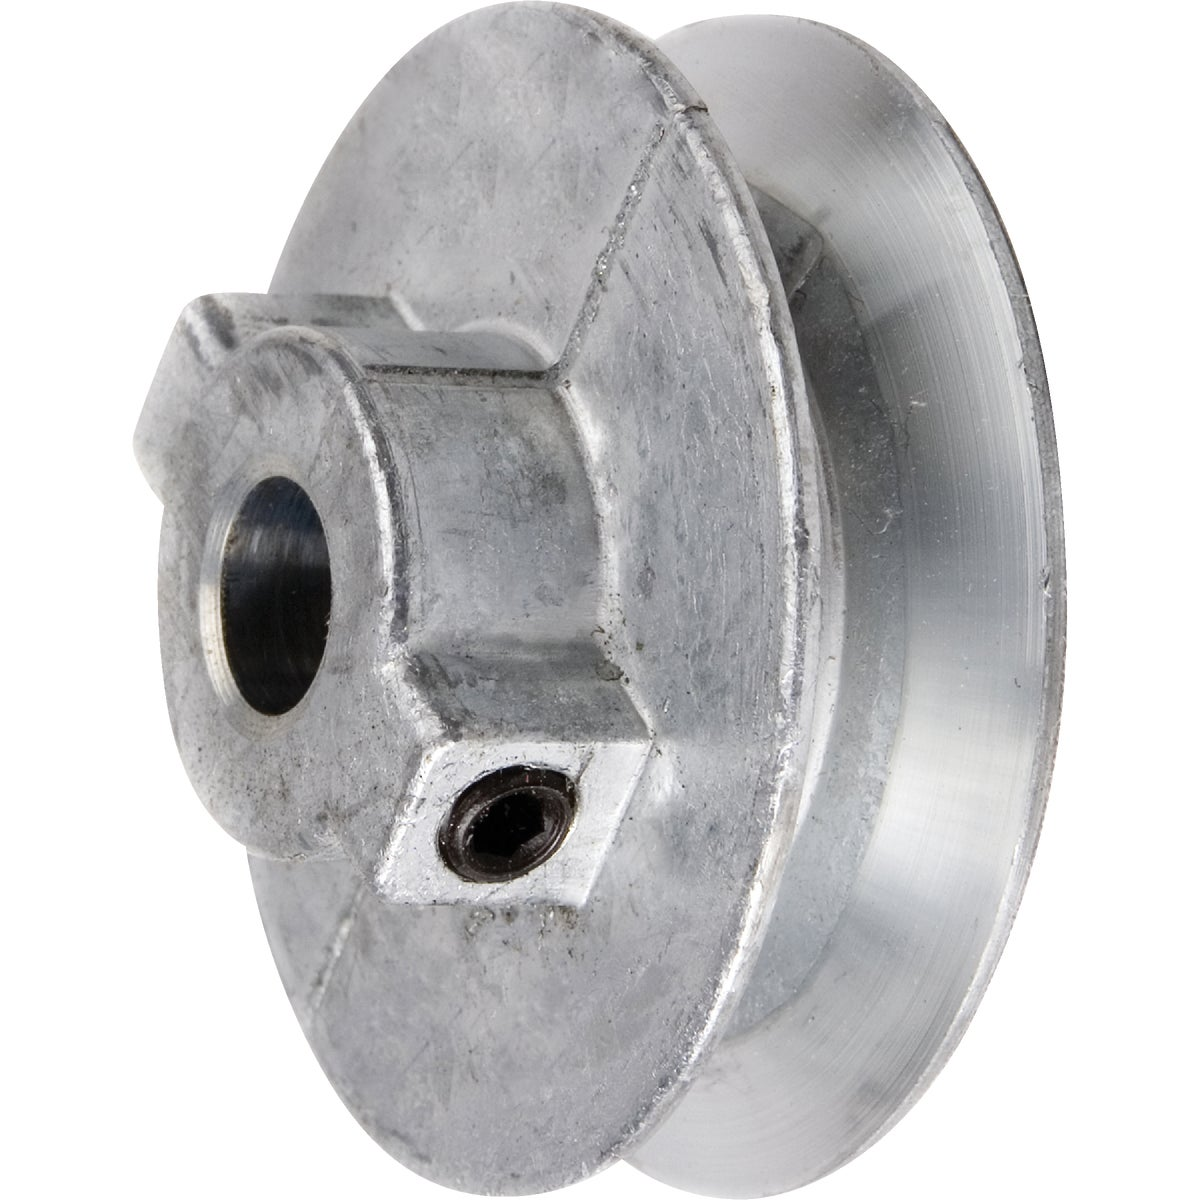 5-1/2X3/4 PULLEY - 550A7 by Chicago Die Casting